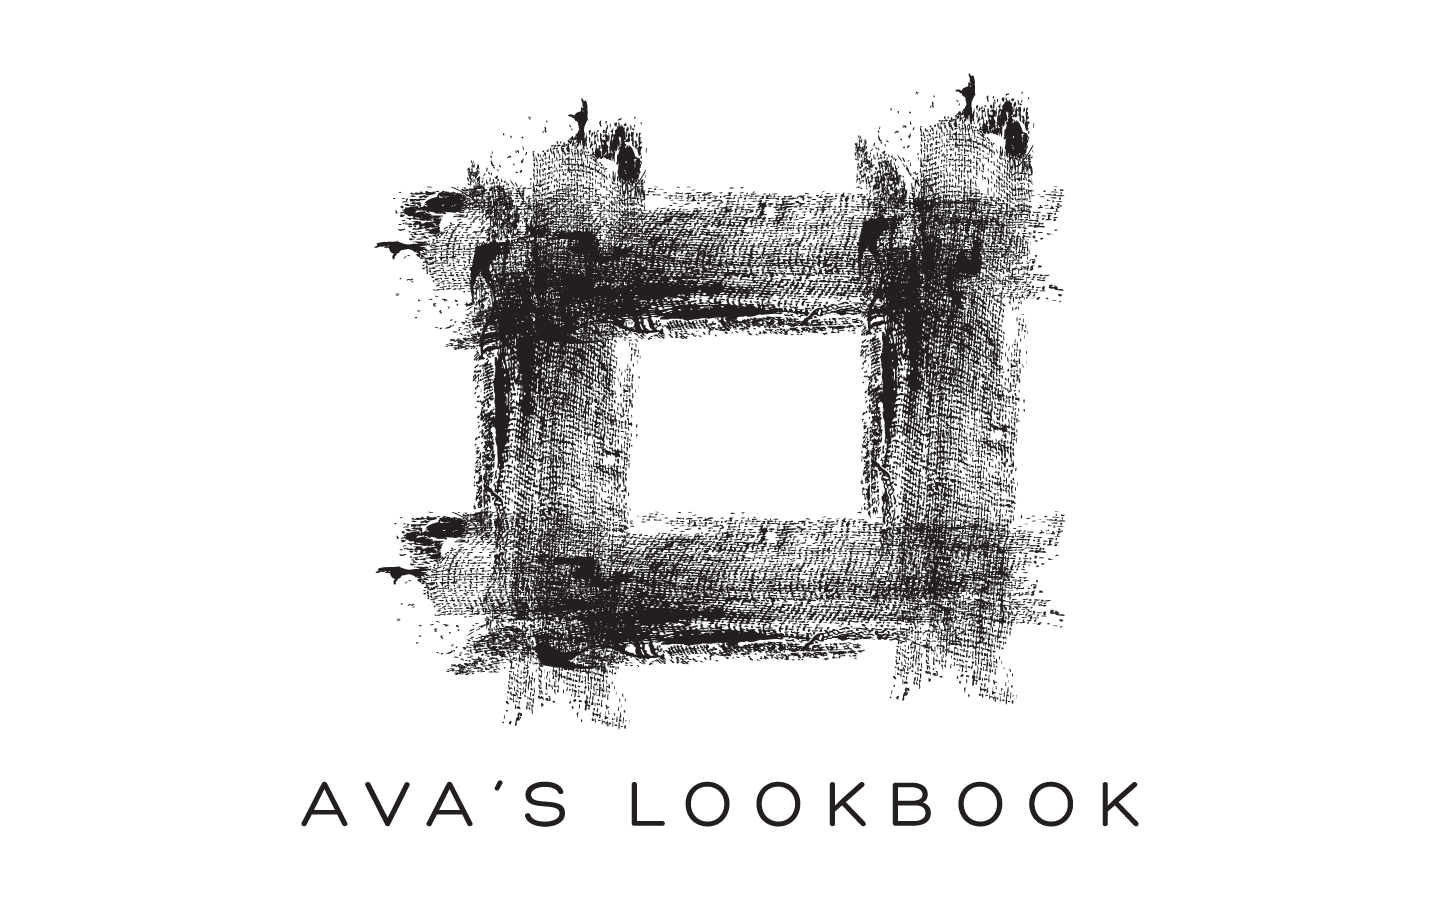 Ava's Lookbook